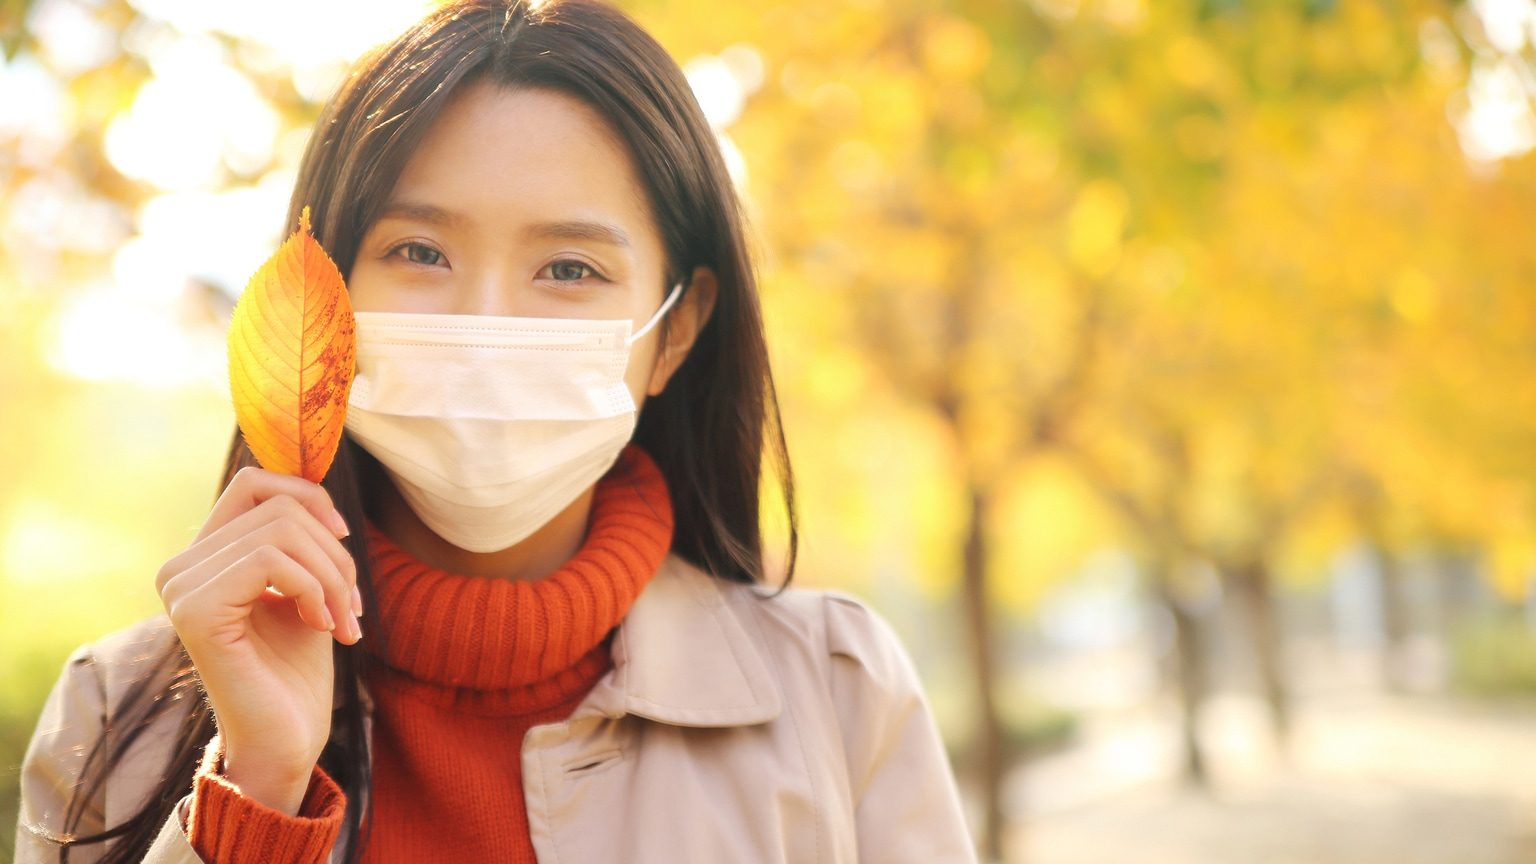 Woman walking outdoors during the fall wearing a face mask